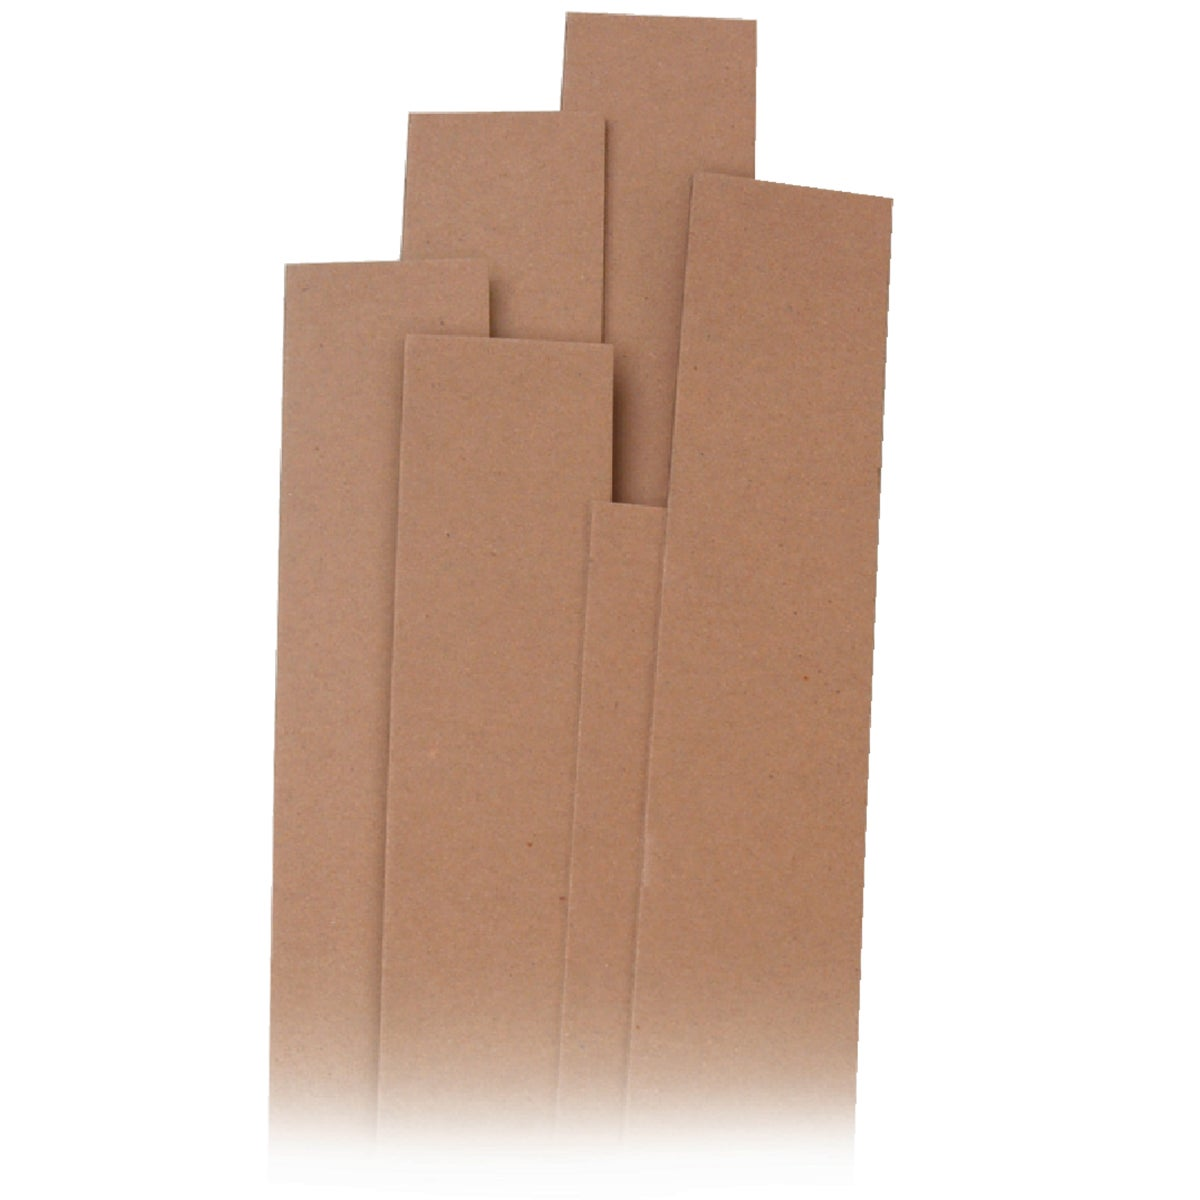 1-1/2X45 DRYWALL SHIM - DS-45 by Strait Flex Intl Inc